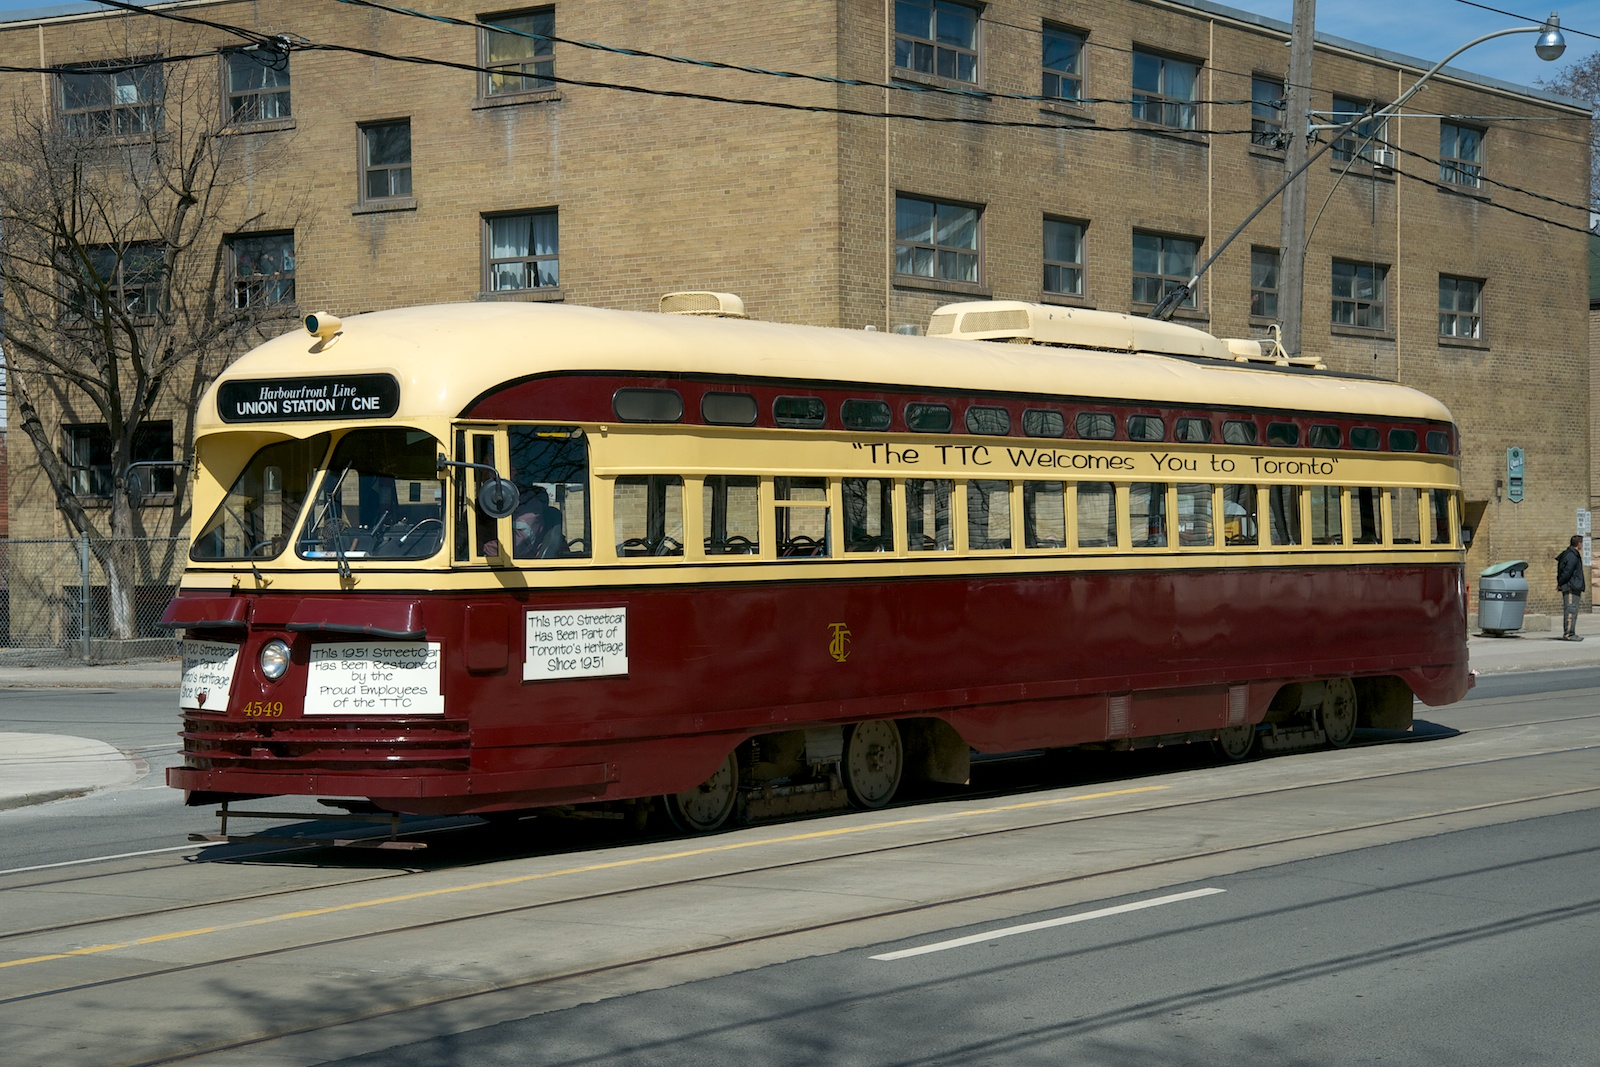 File:TTC PCC car 4549 was part of a parade of 4 generations of streetcars